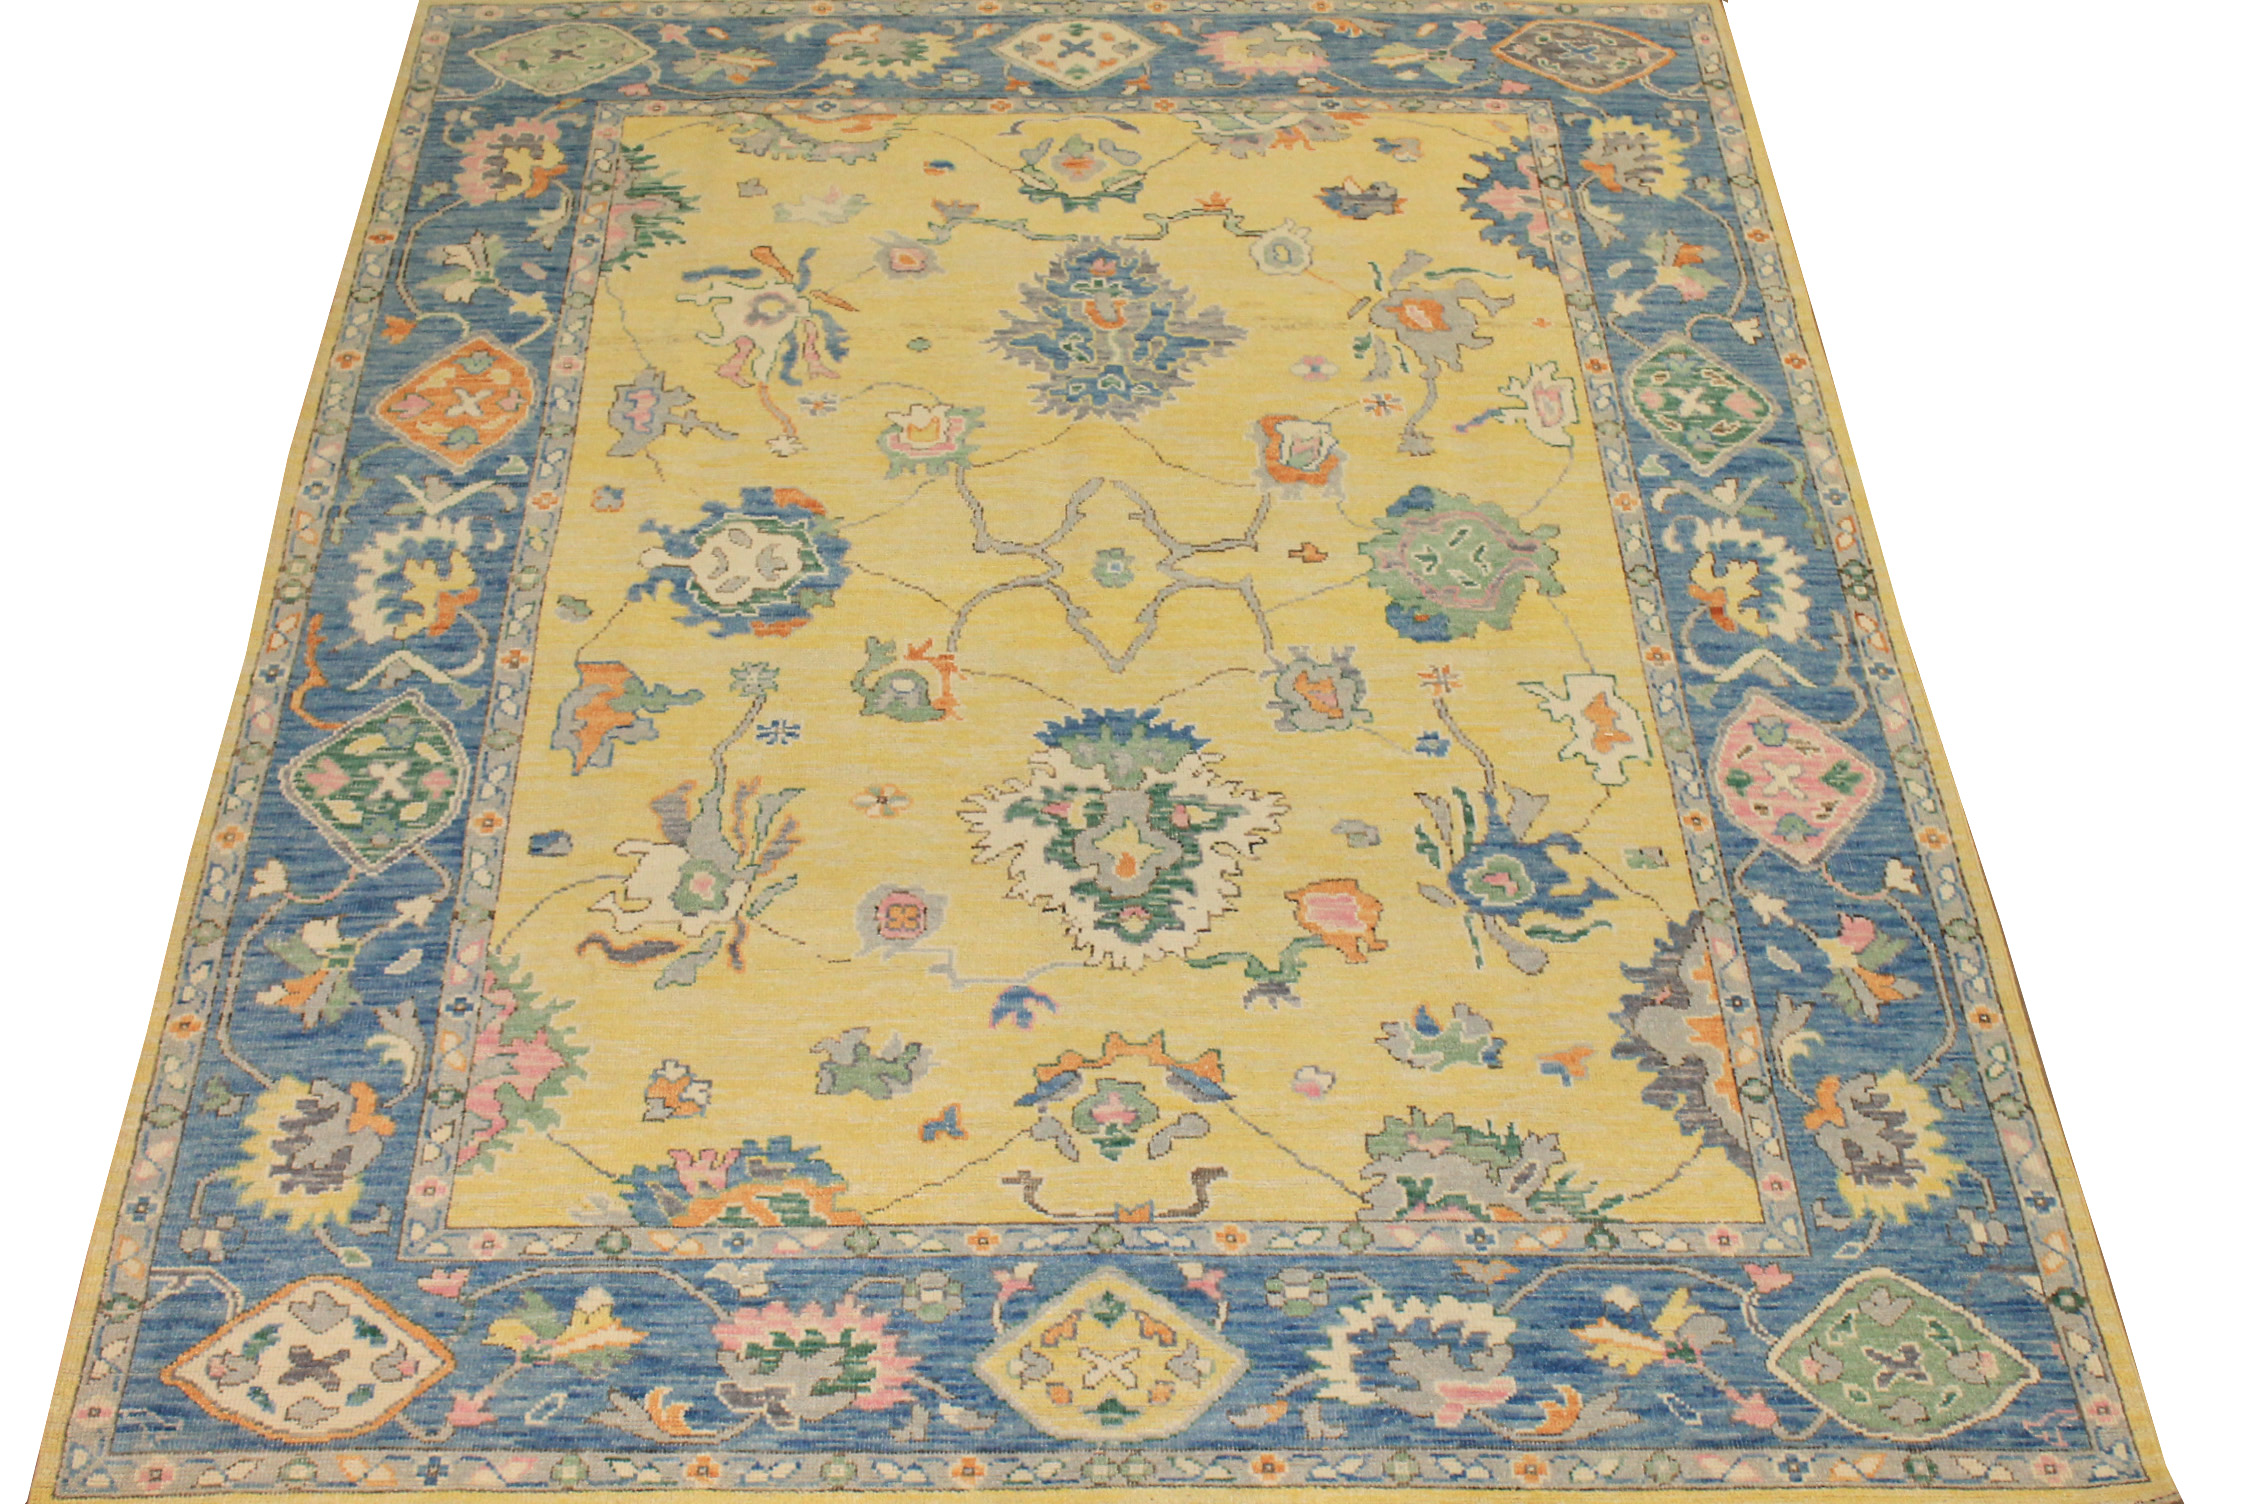 8x10 Oushak Hand Knotted Wool Area Rug - MR024403